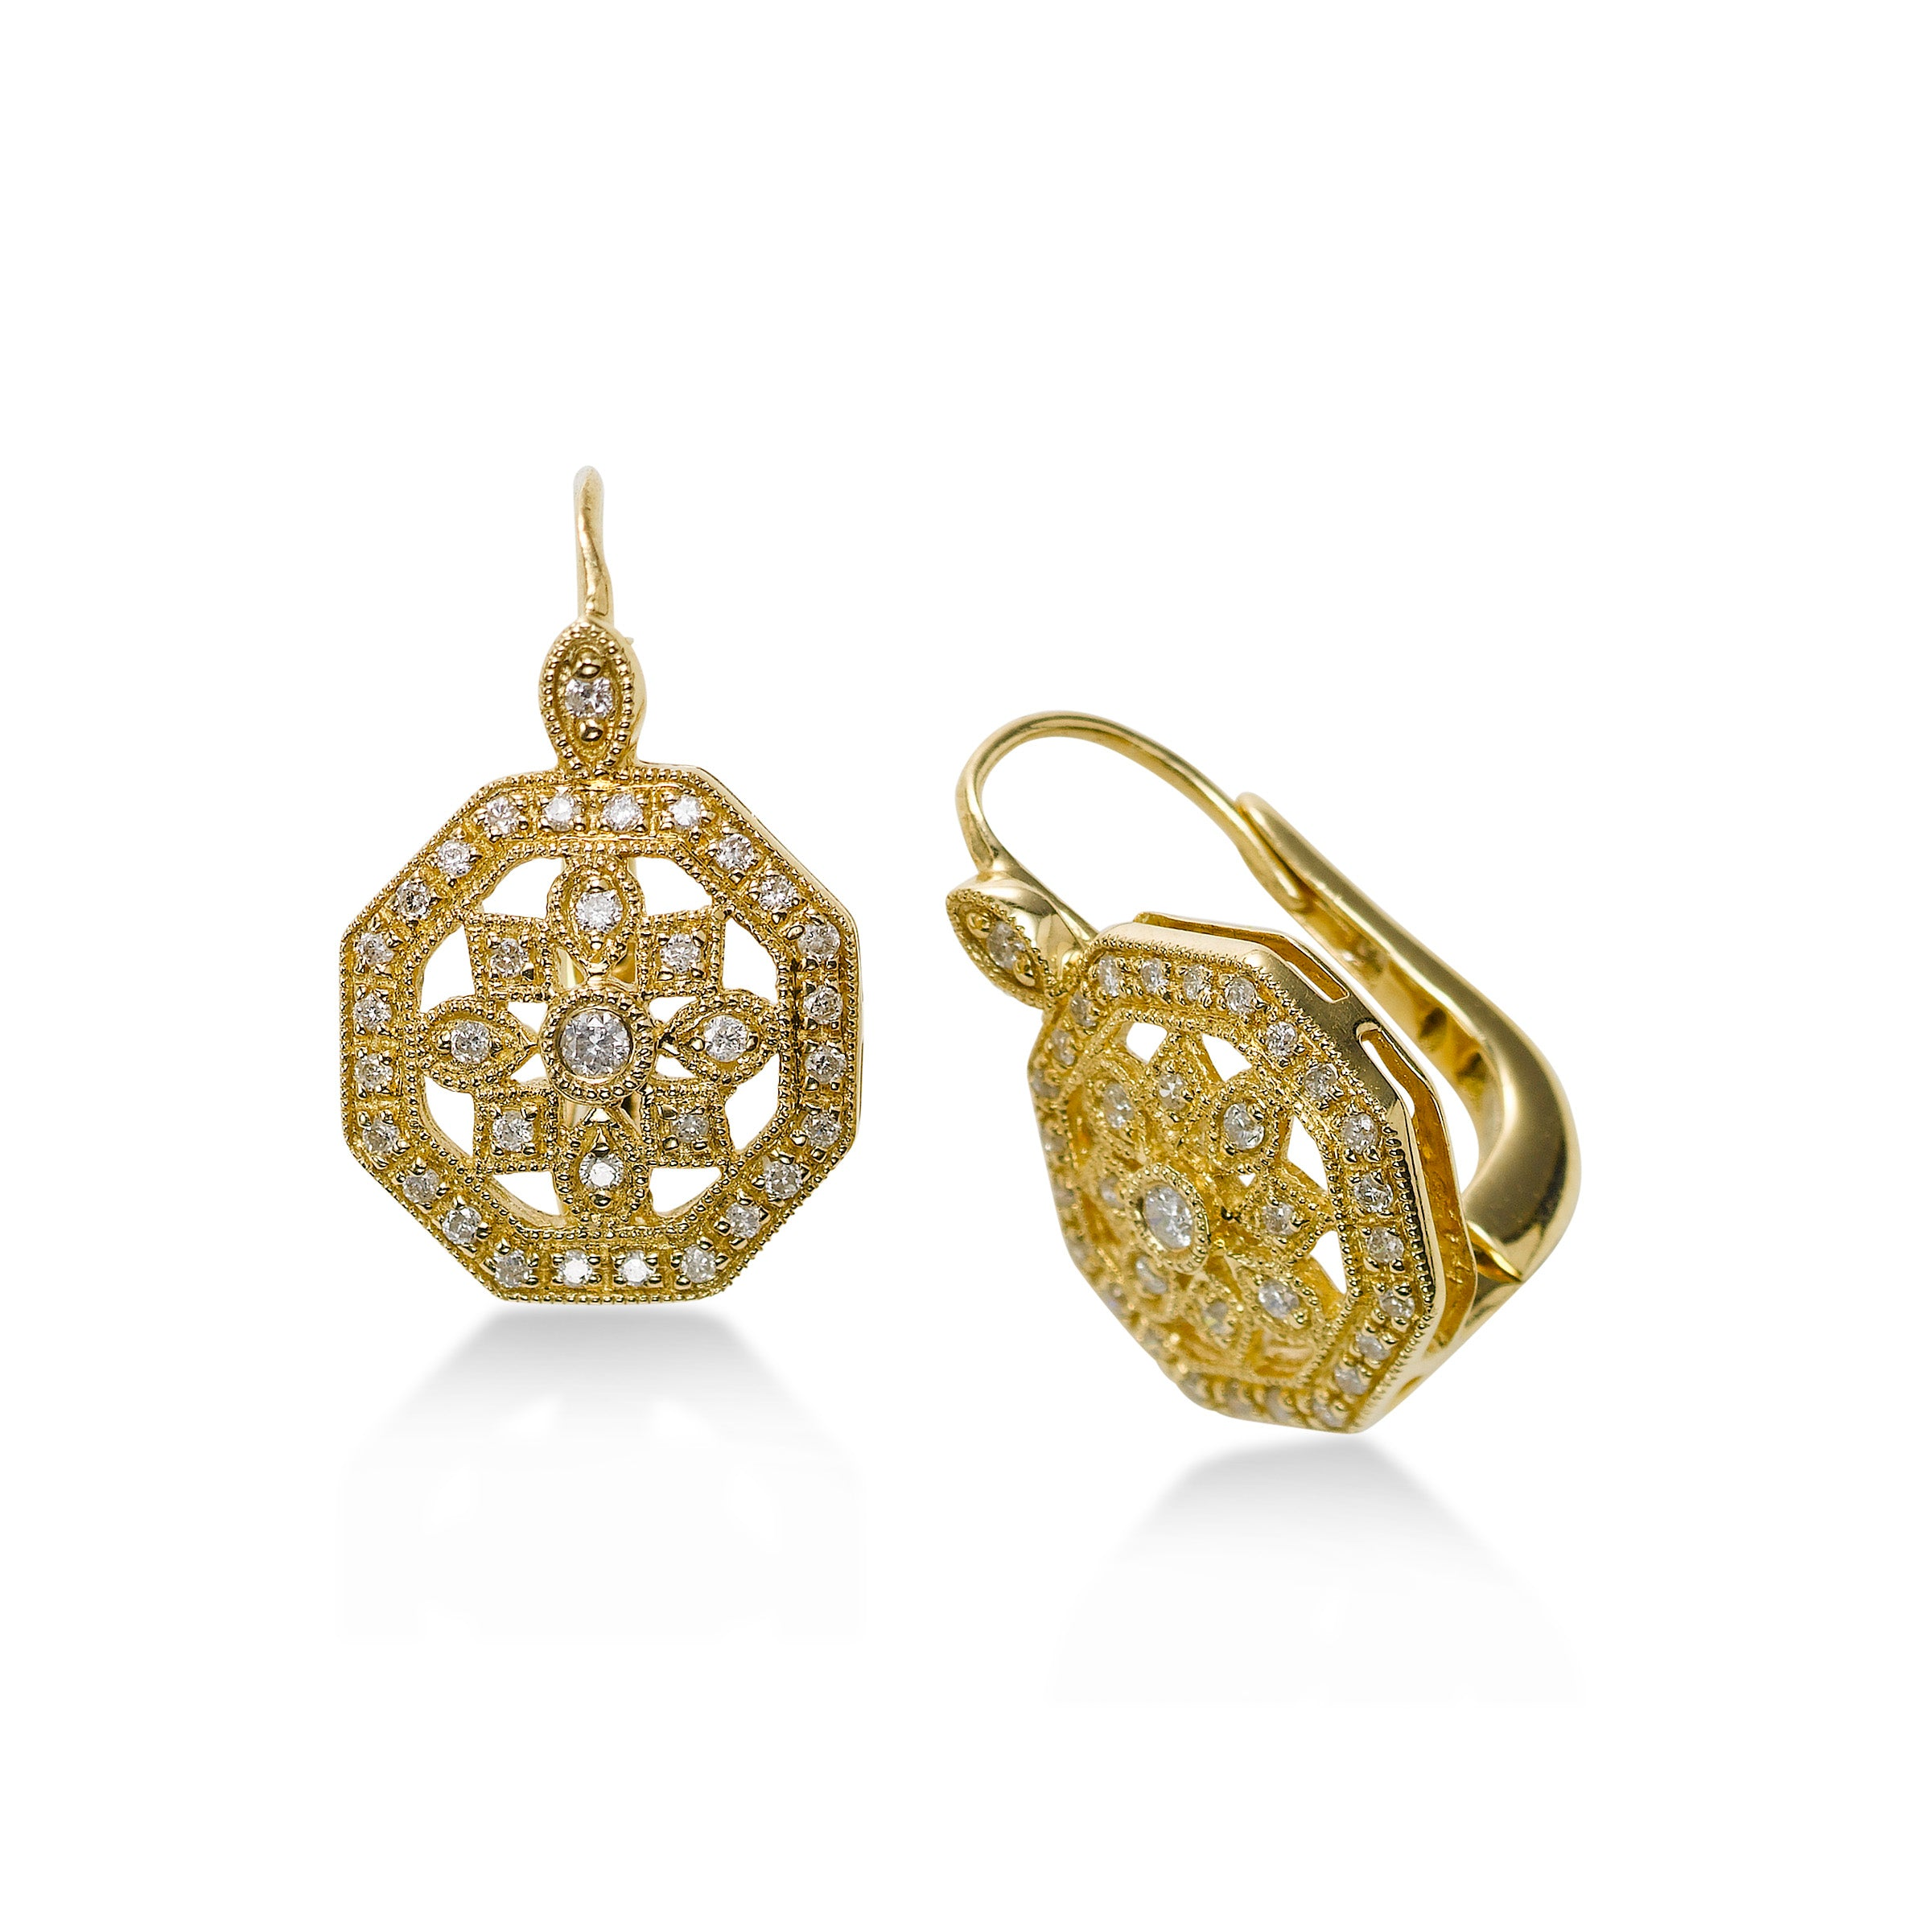 Octagonal Diamond Earrings, .30 Carat, 14K Yellow Gold